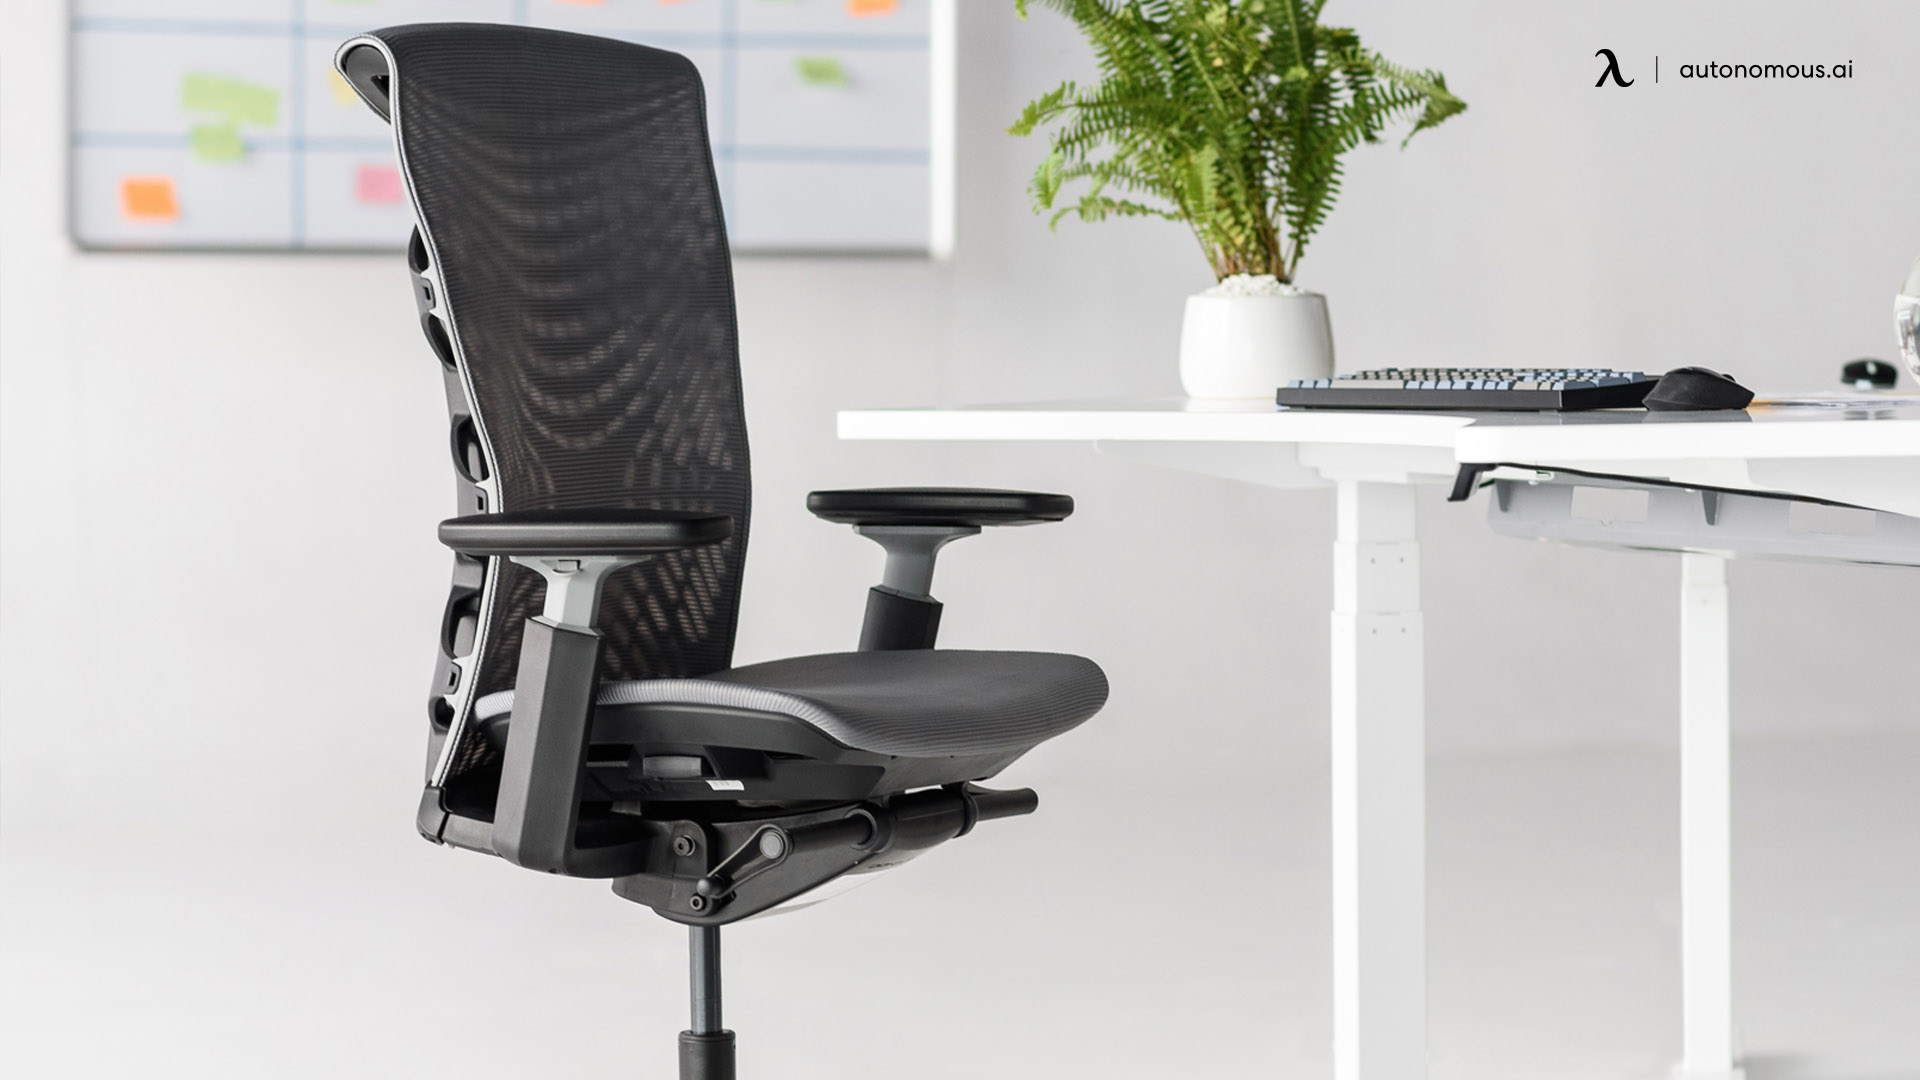 What are The Advantages and Disadvantages of Ergonomic Chairs?